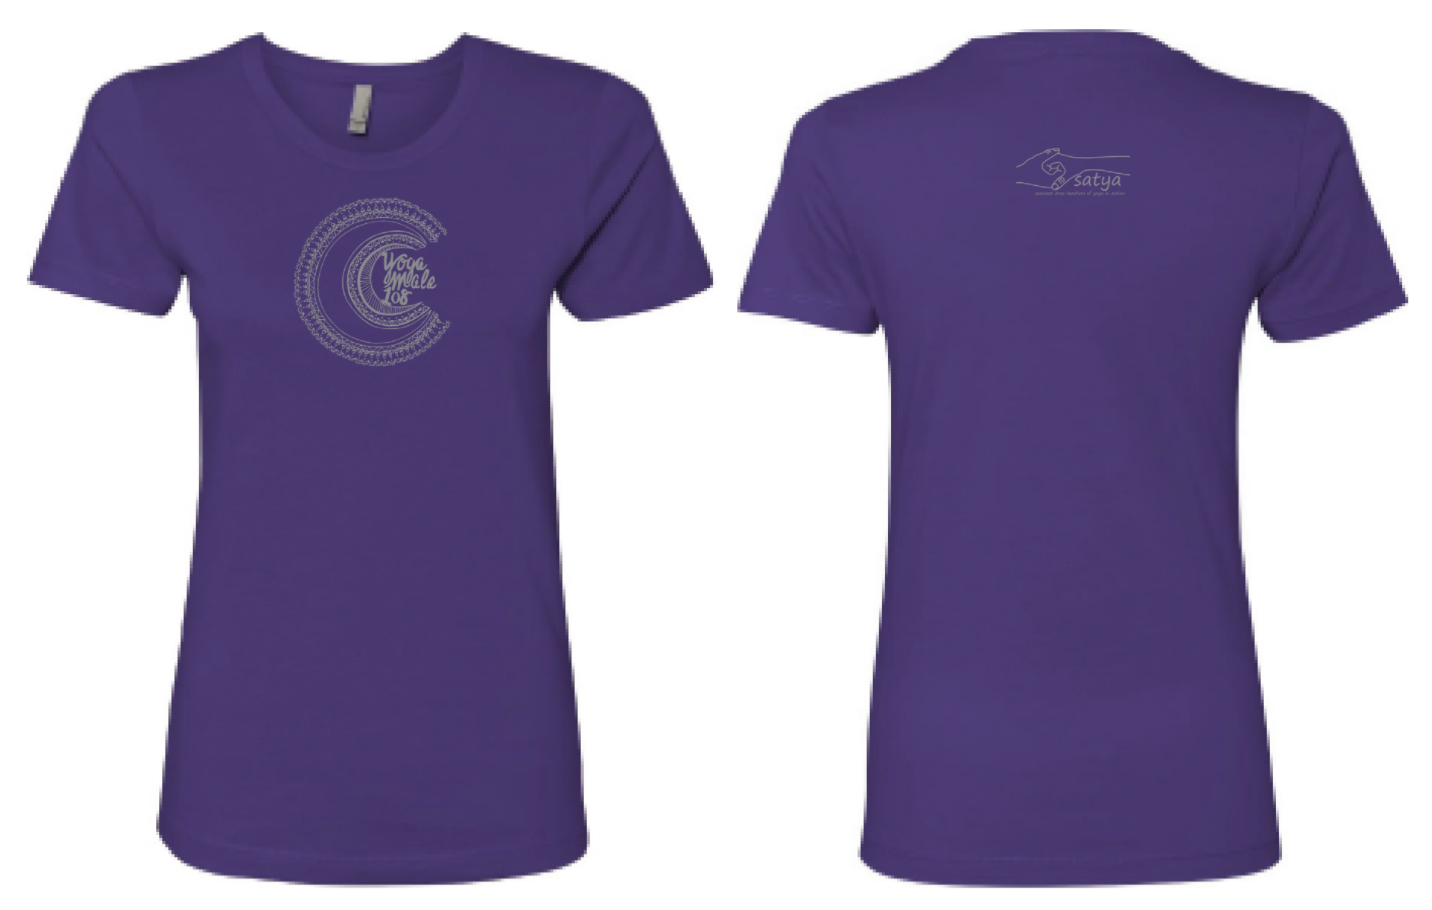 '18 Yoga Mala T-Shirt (Purple-XL)